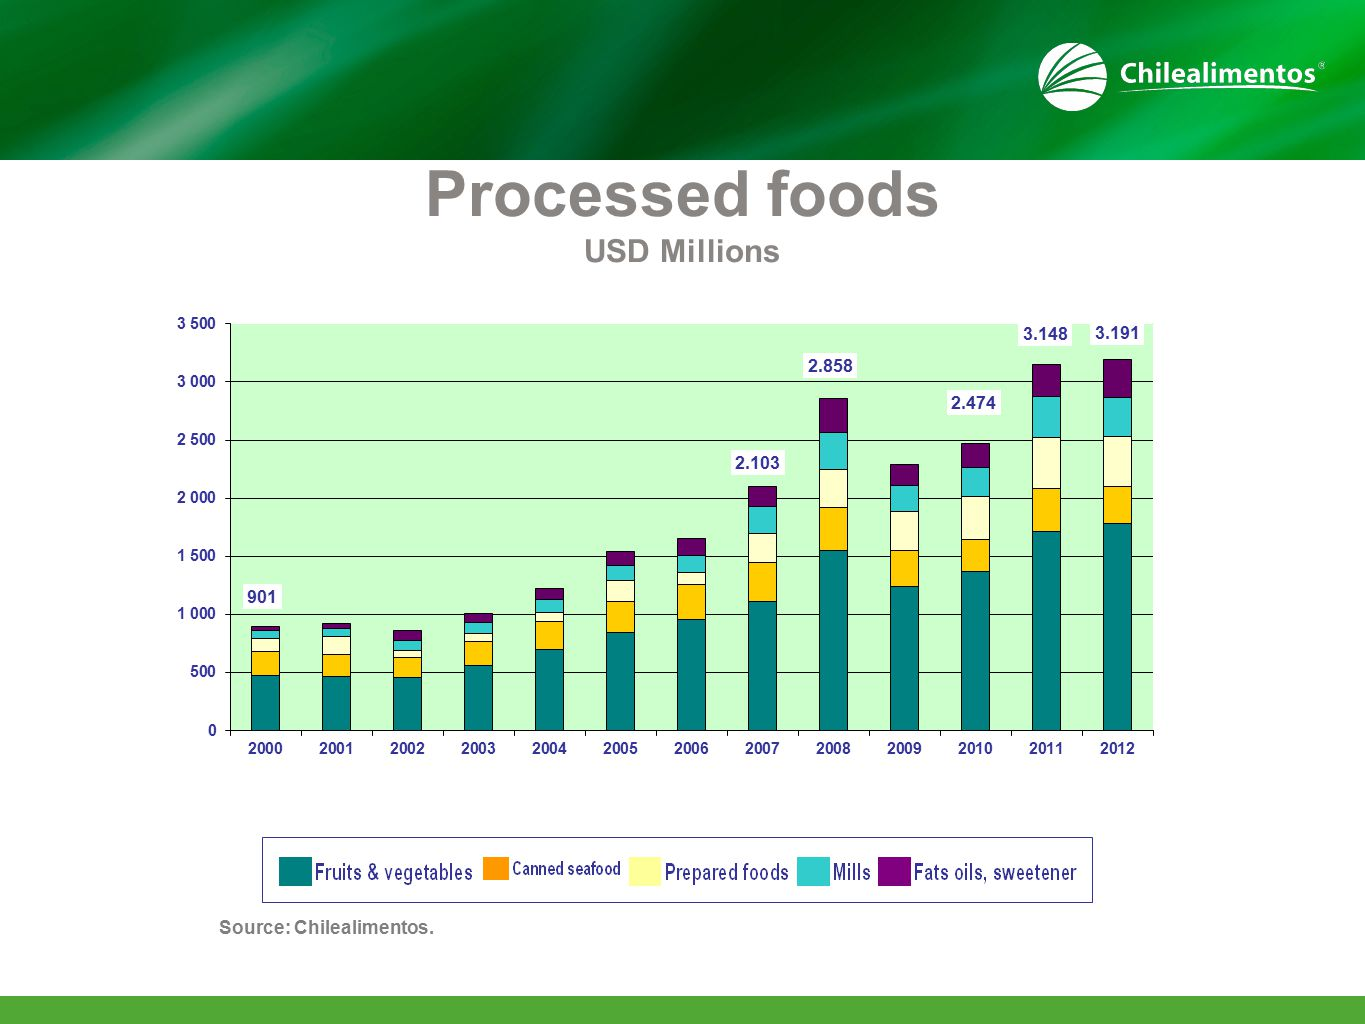 Source: Chilealimentos. Processed foods USD Millions